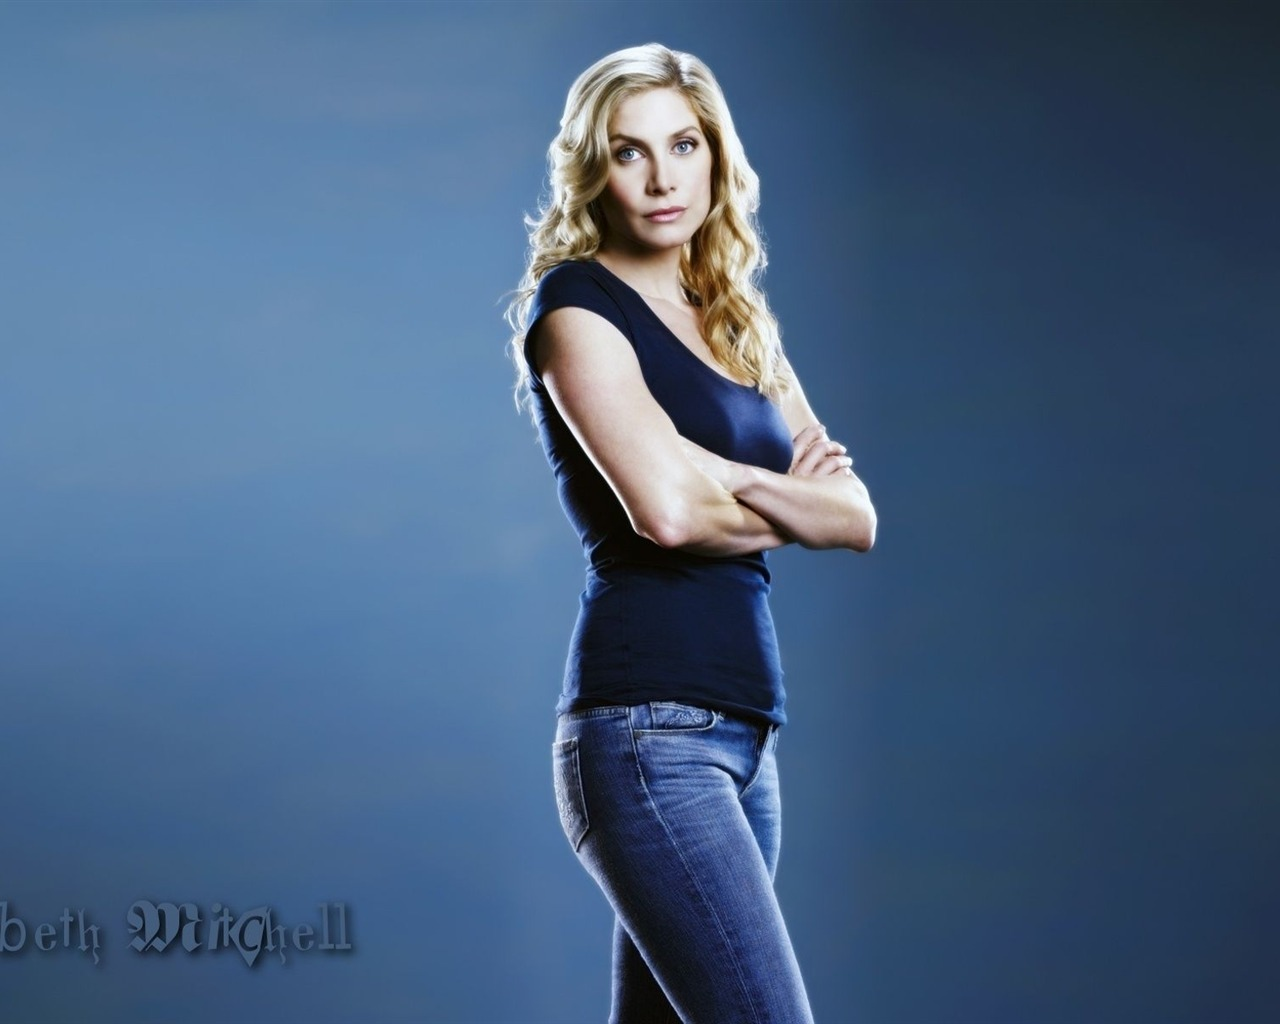 Elizabeth Mitchell #010 - 1280x1024 Wallpapers Pictures Photos Images